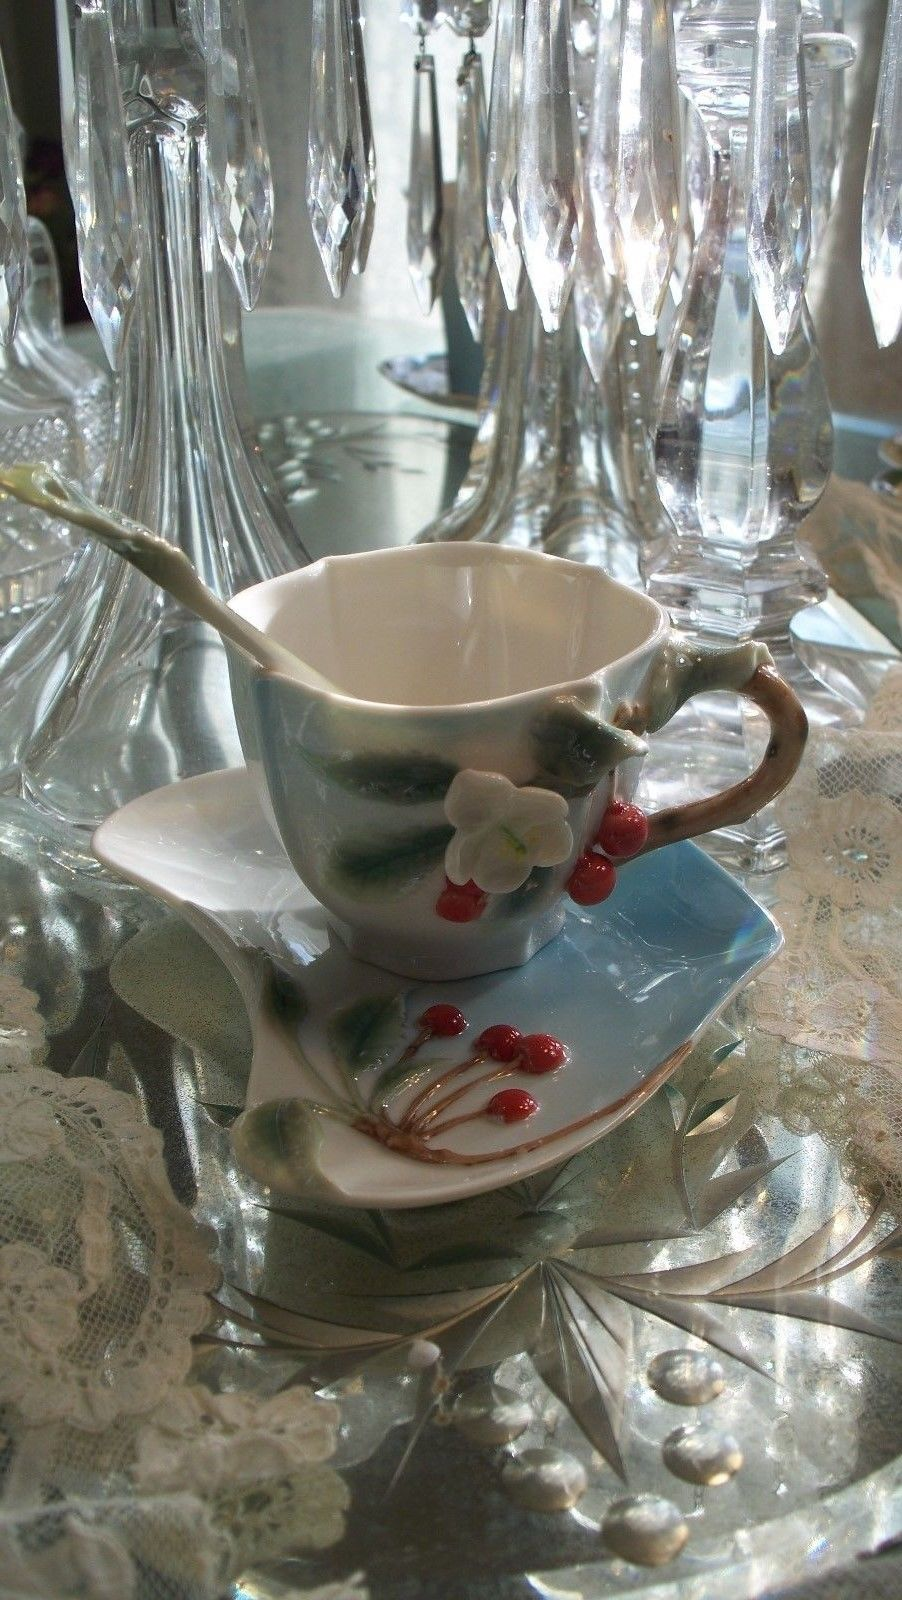 Lovely Garden Cherry Tea Cup,Saucer & Spoon plus Gift Box